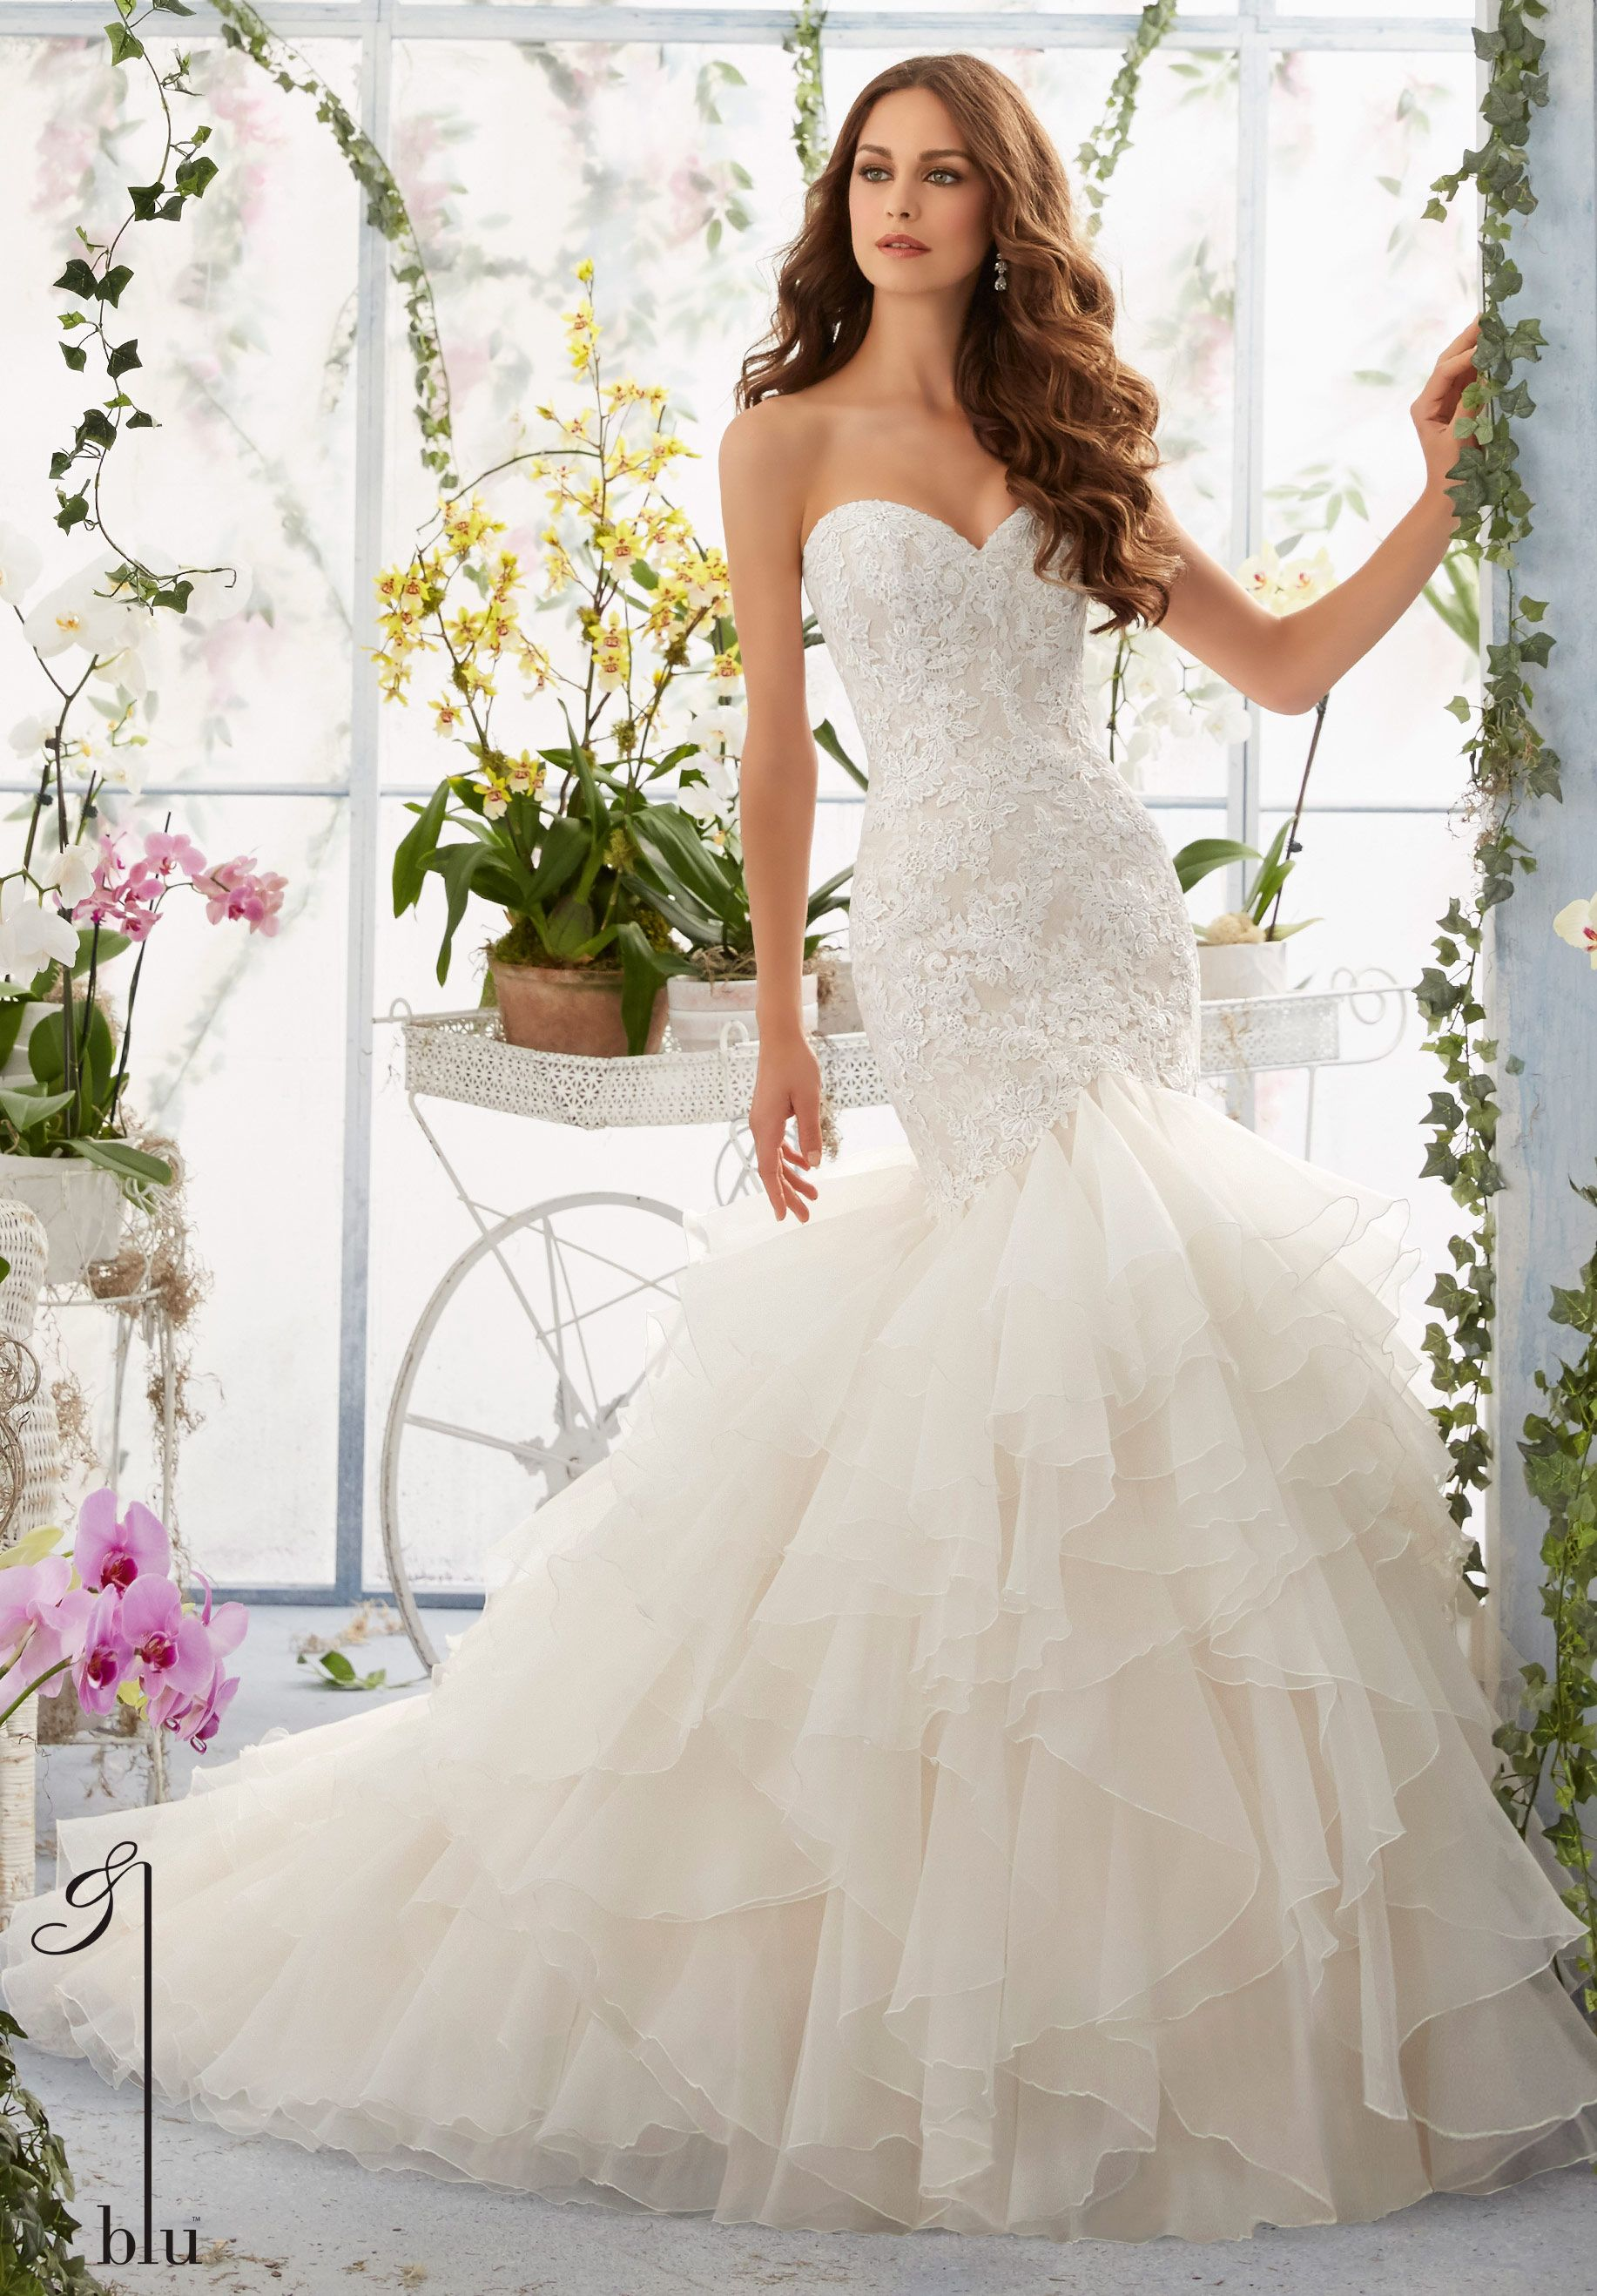 5409 Wedding Gowns / Dresses Venice Lace Appliques Over Chantilly Lace onto the Flounced Organza, Mermaid Gown